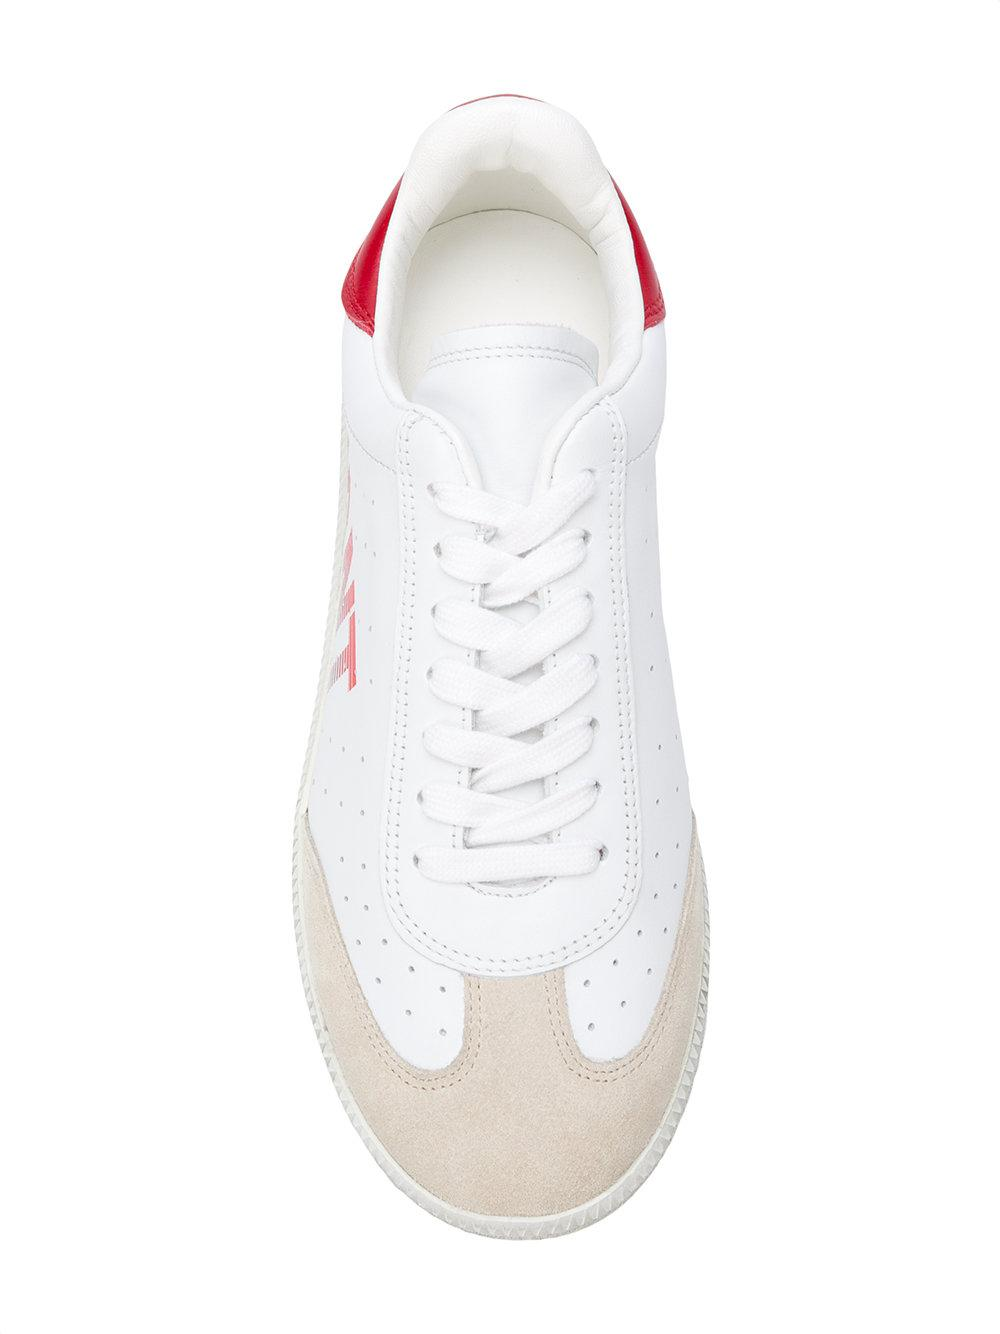 Isabel Marant Cotton Bryce Sneakers in White